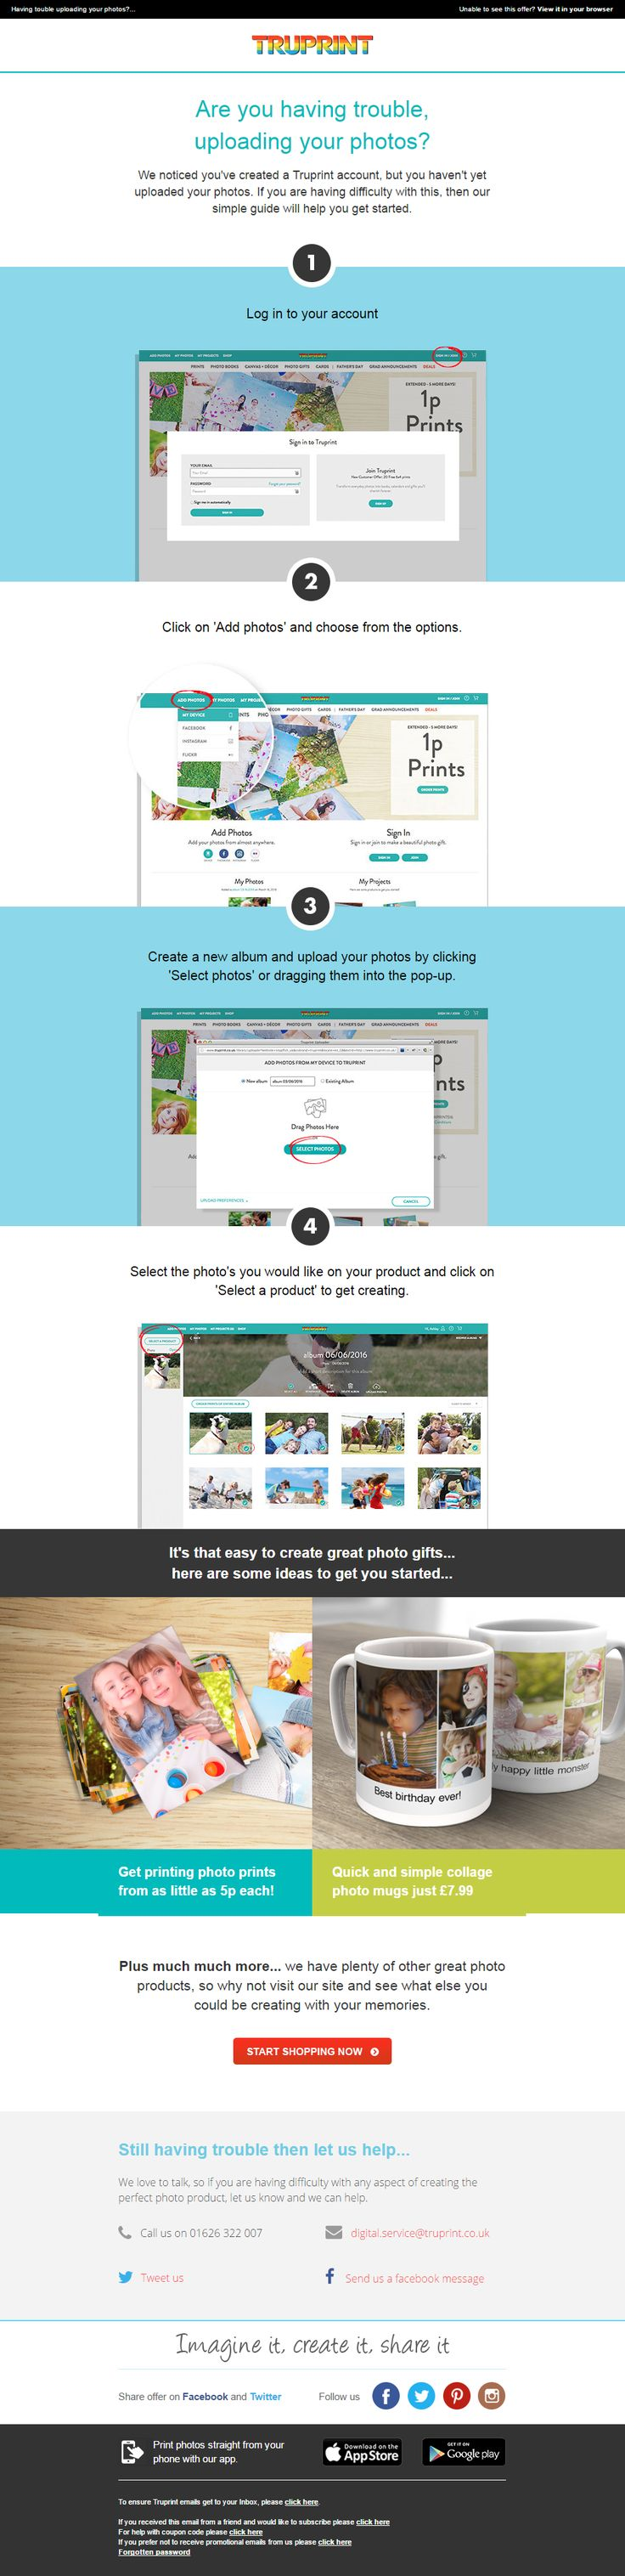 The 8 best Browse Abandon Emails: Gifts images on Pinterest | Cart ...